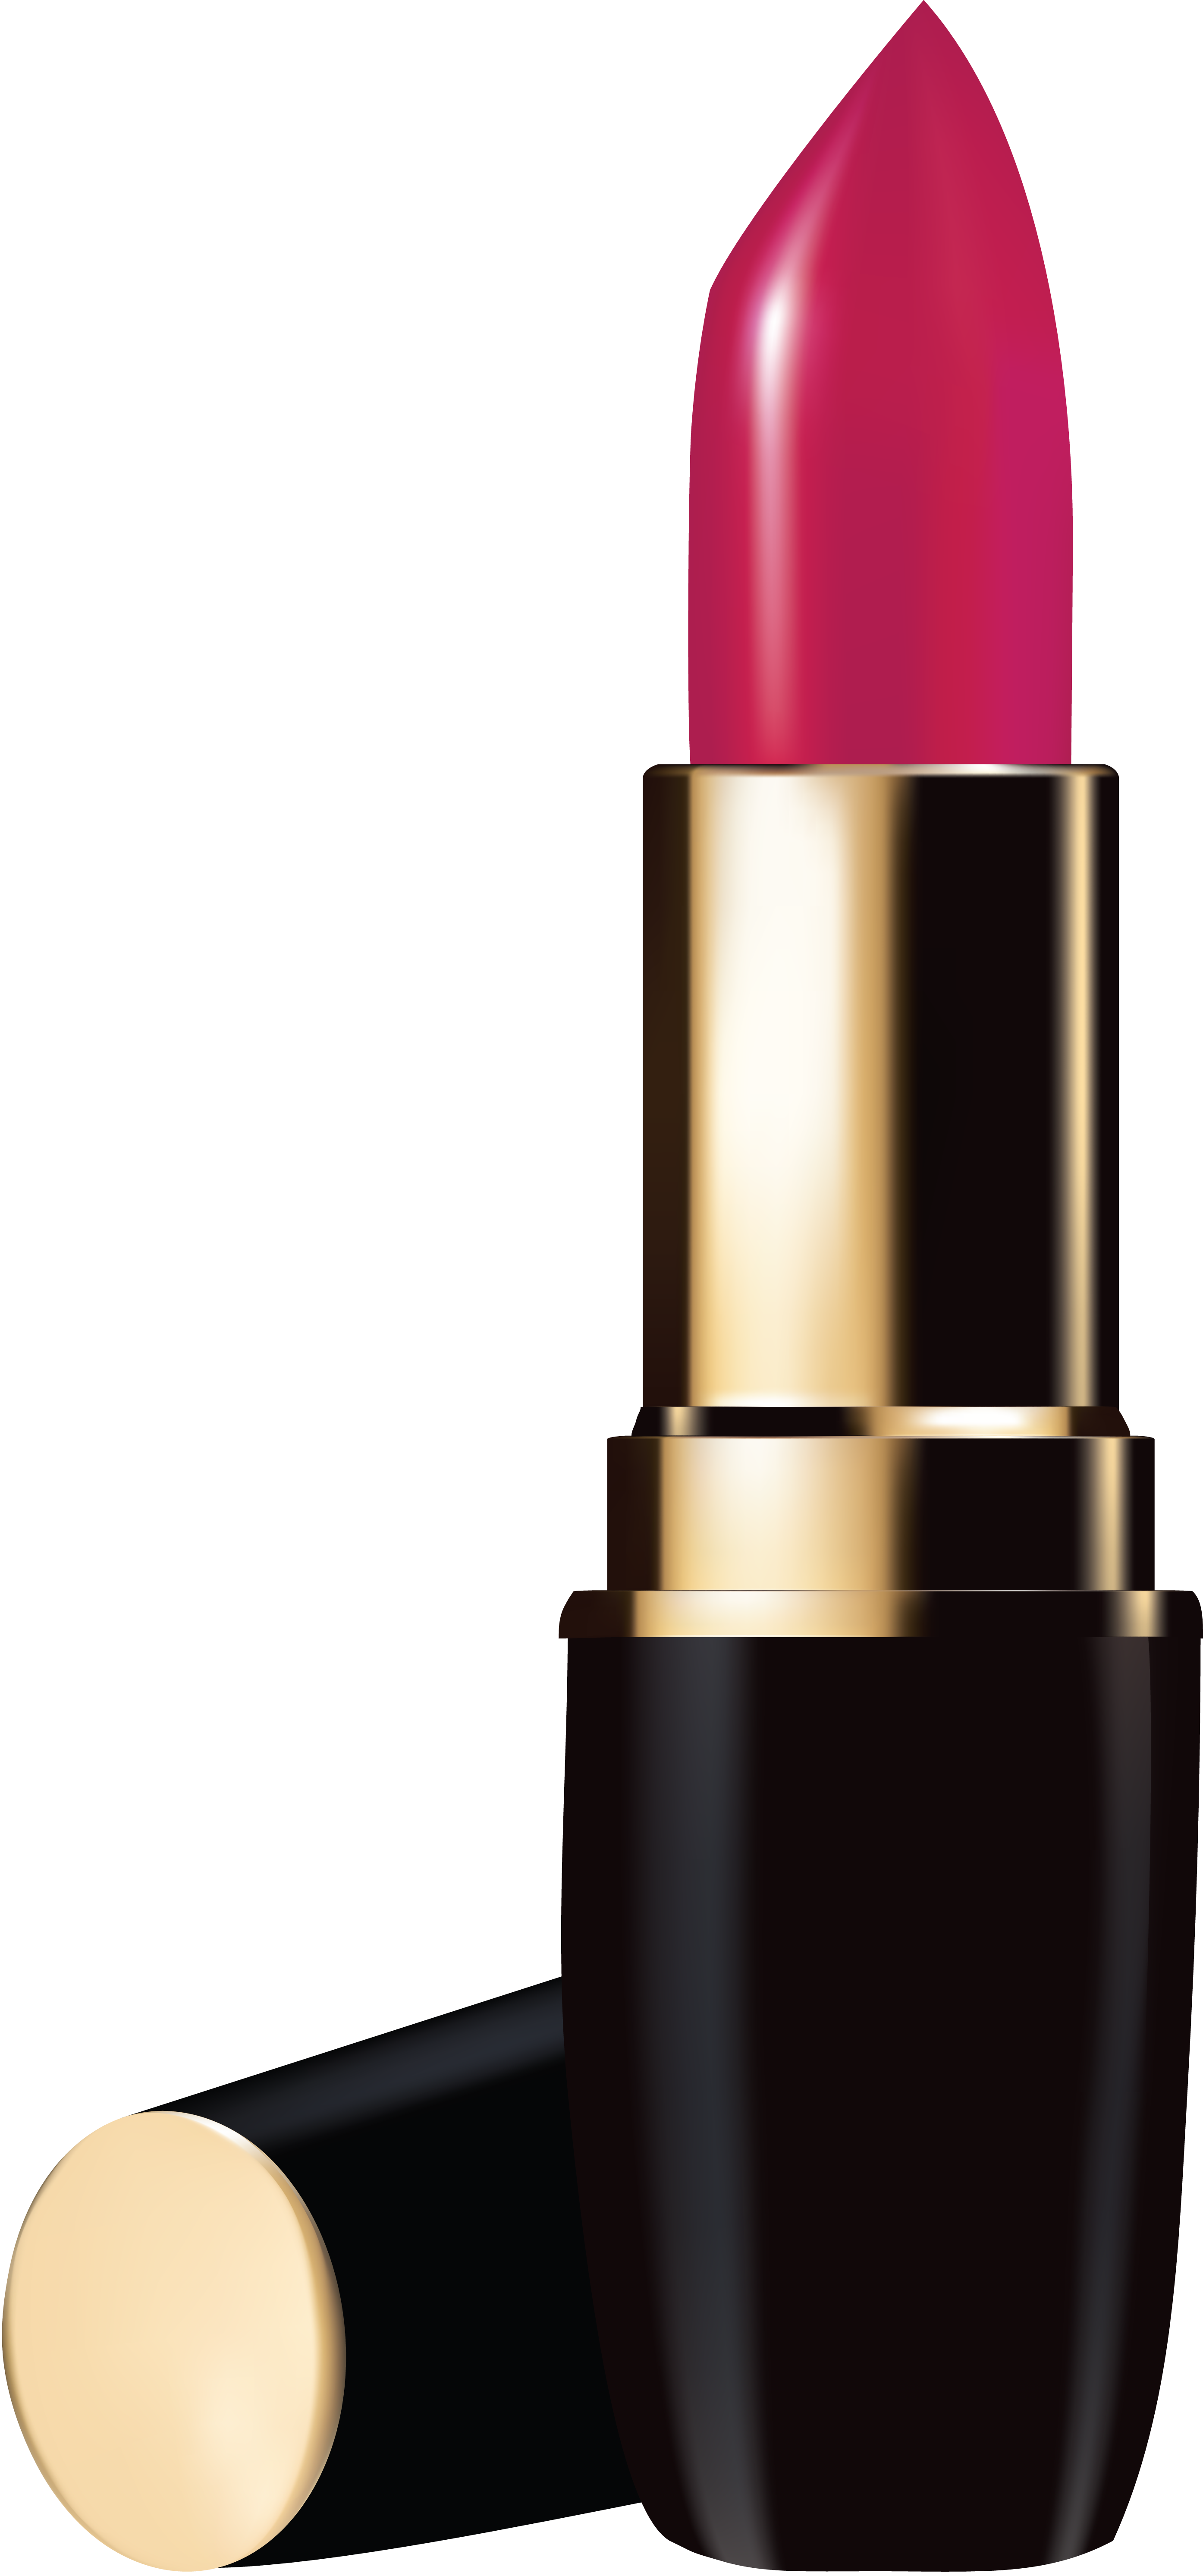 collection of transparent. Lipstick clipart icon